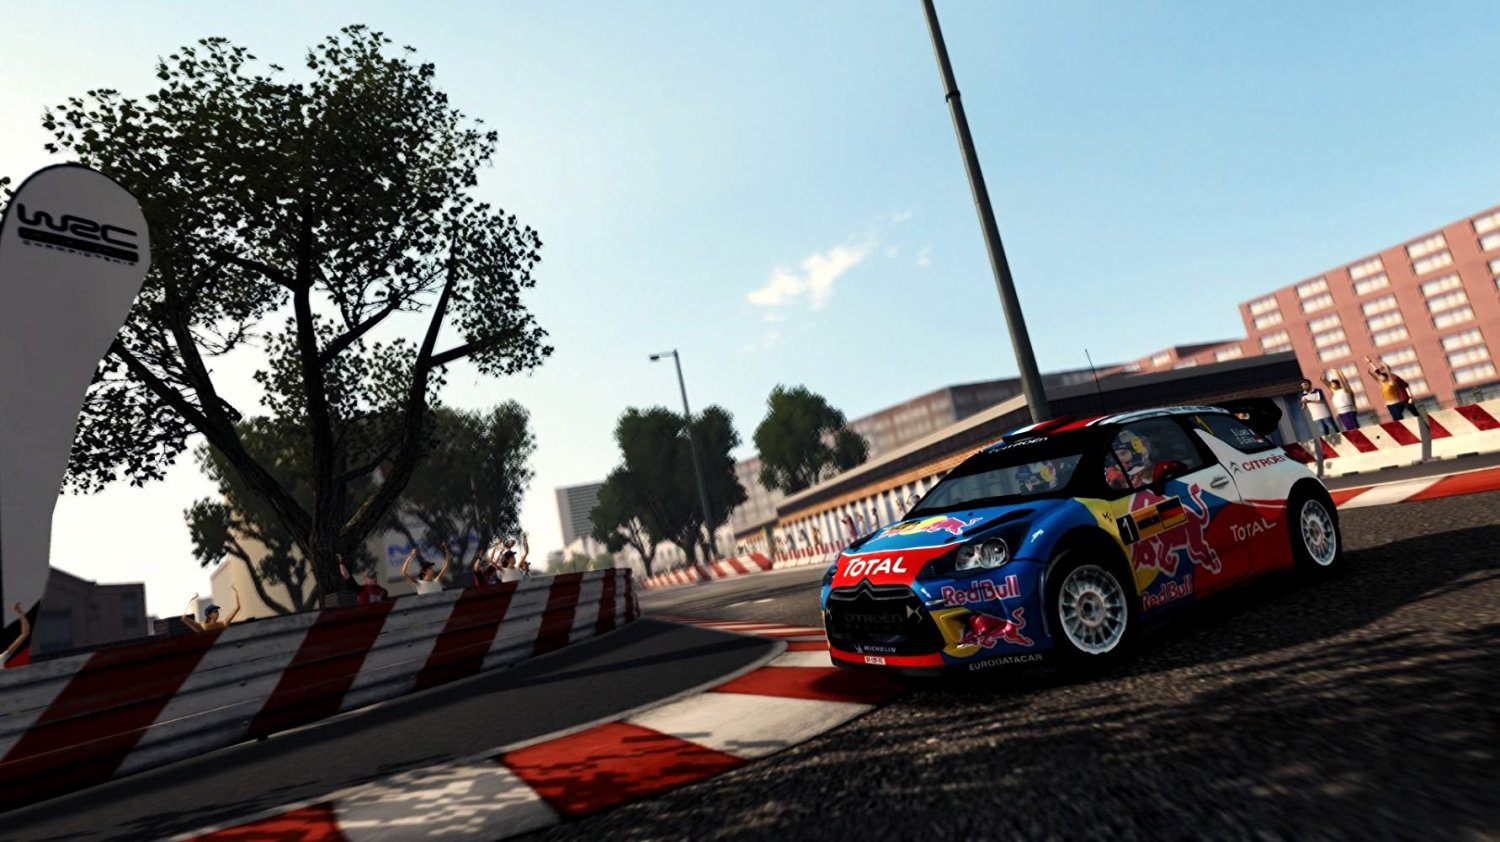 WRC 2, FIA, World Rally Championship, WRC 2: FIA World Rally Championship Review, PS3, Xbox 360, Xbox, PC, Driving, Racing, Simulation, Video Game, Review, Reviews,